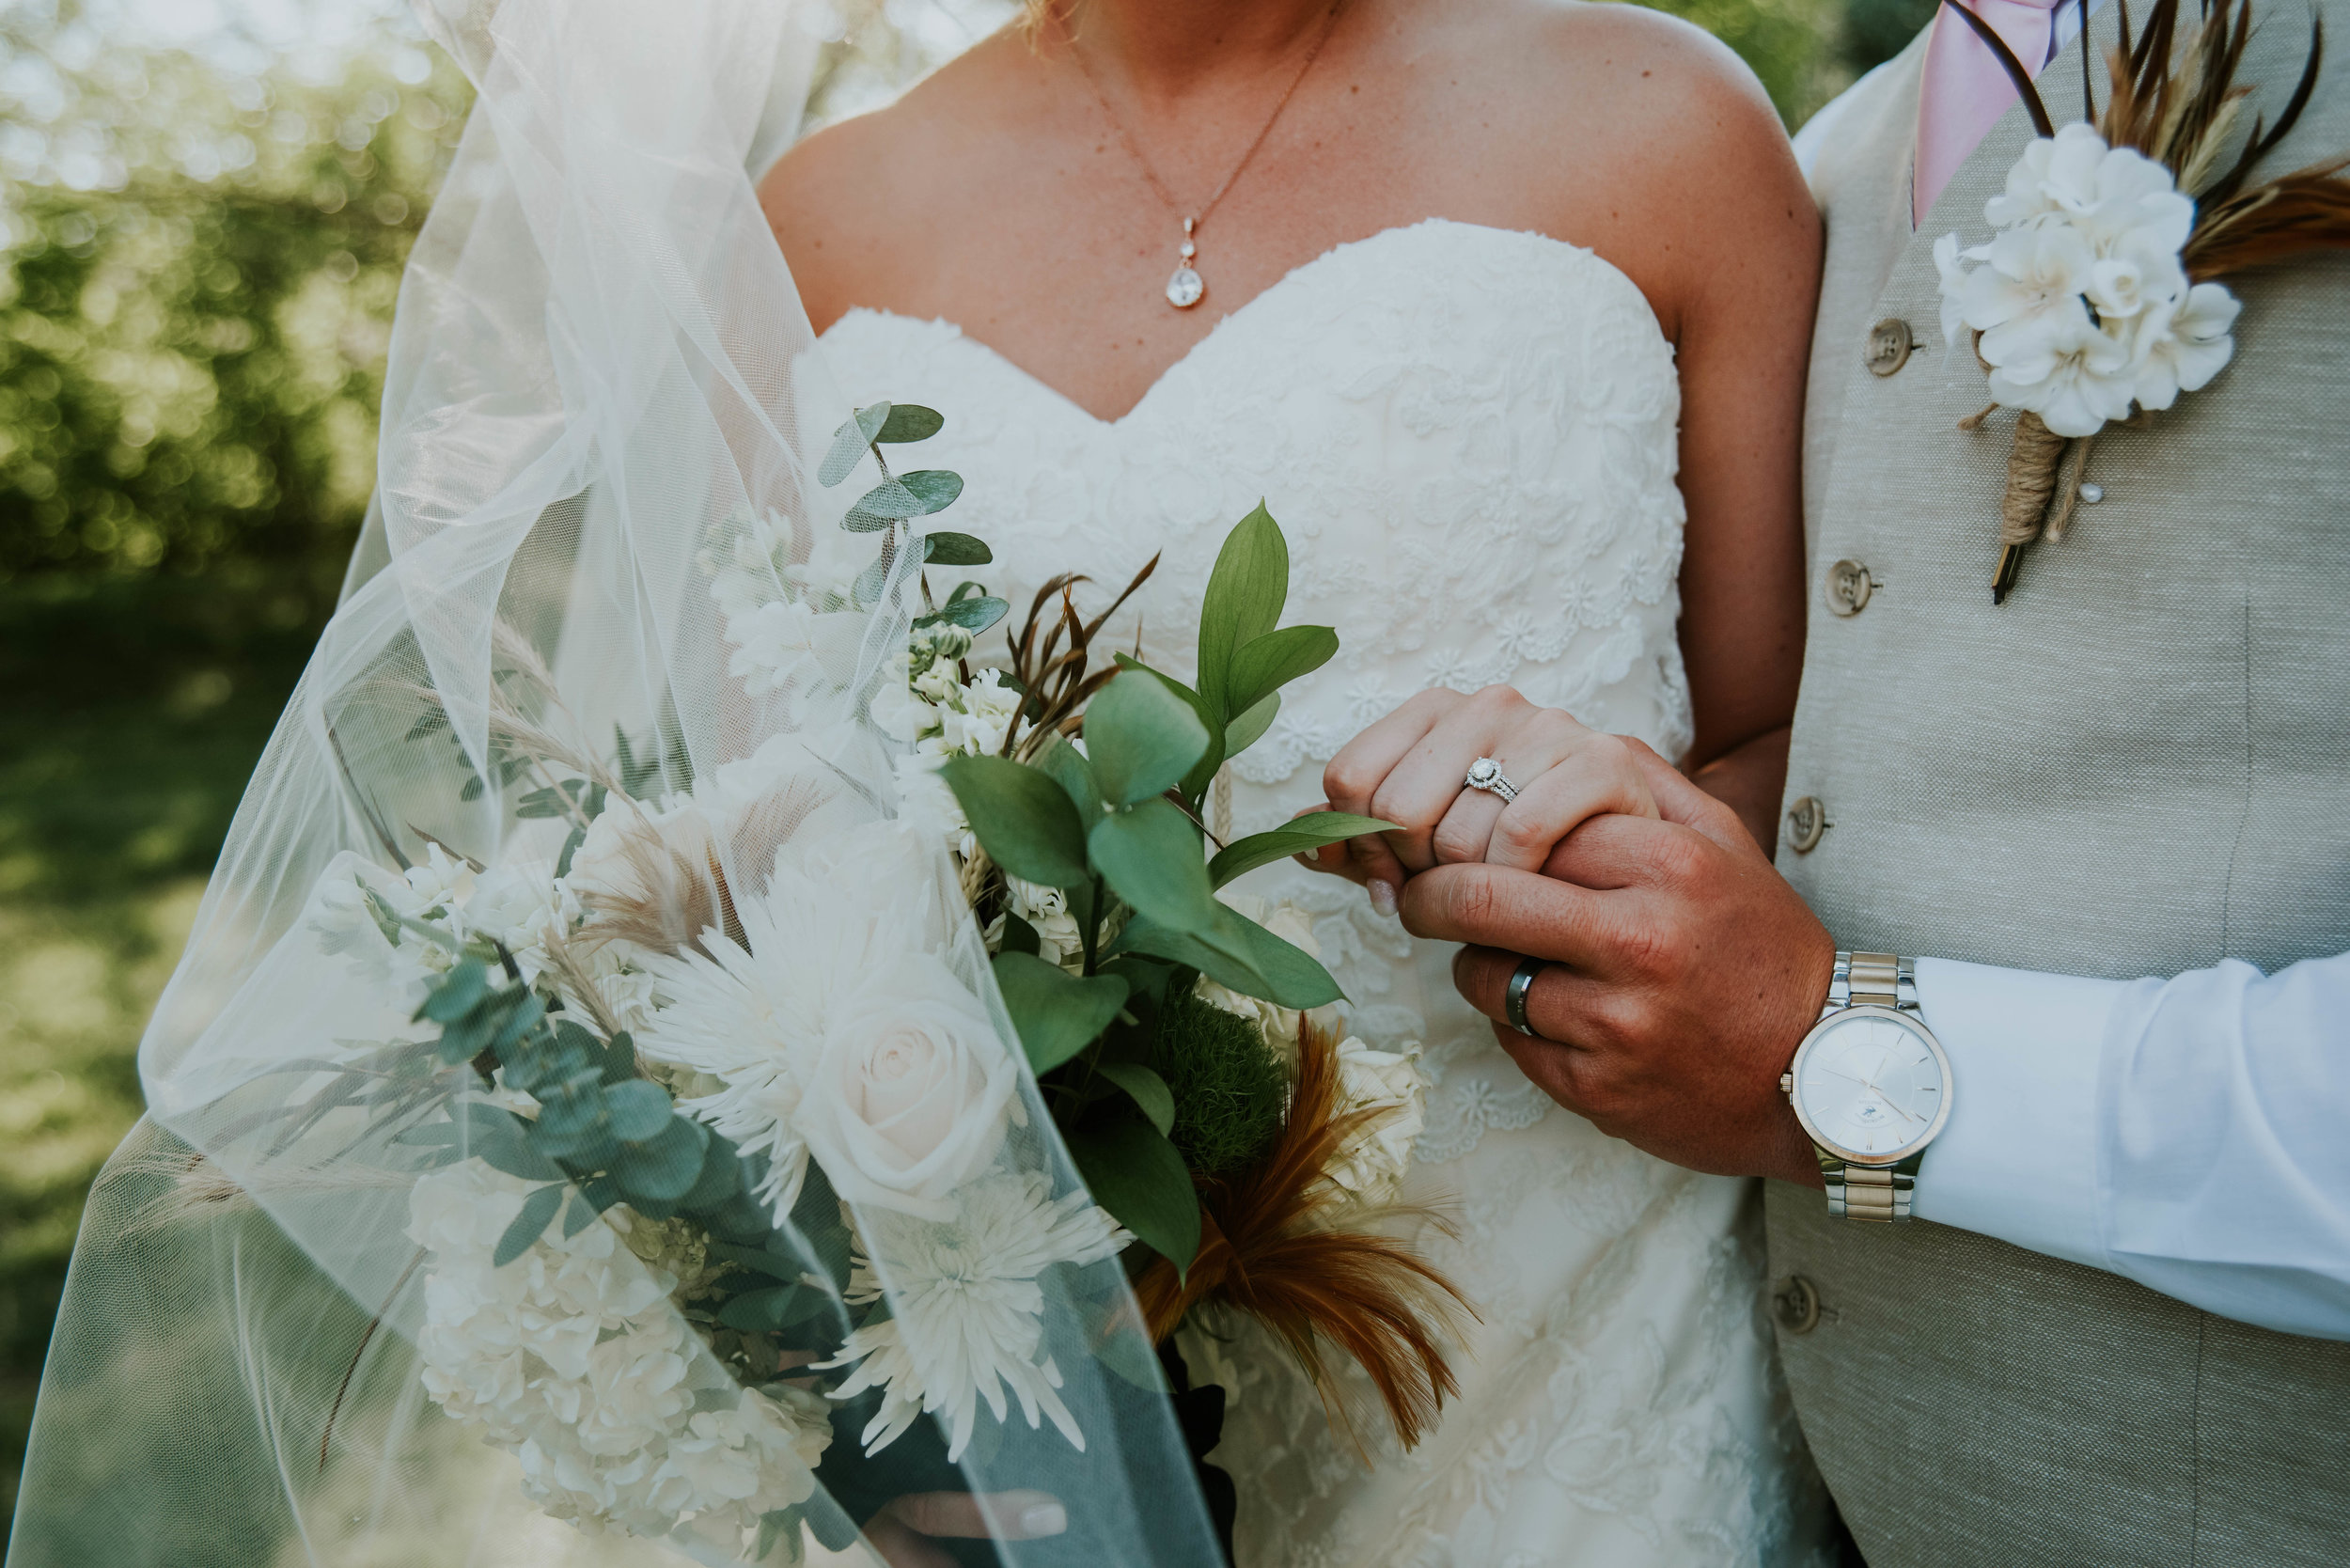 So you want to know how to find the PERFECT wedding photographer?! - With so many photographers out there, how can you be sure you'll get the right one?